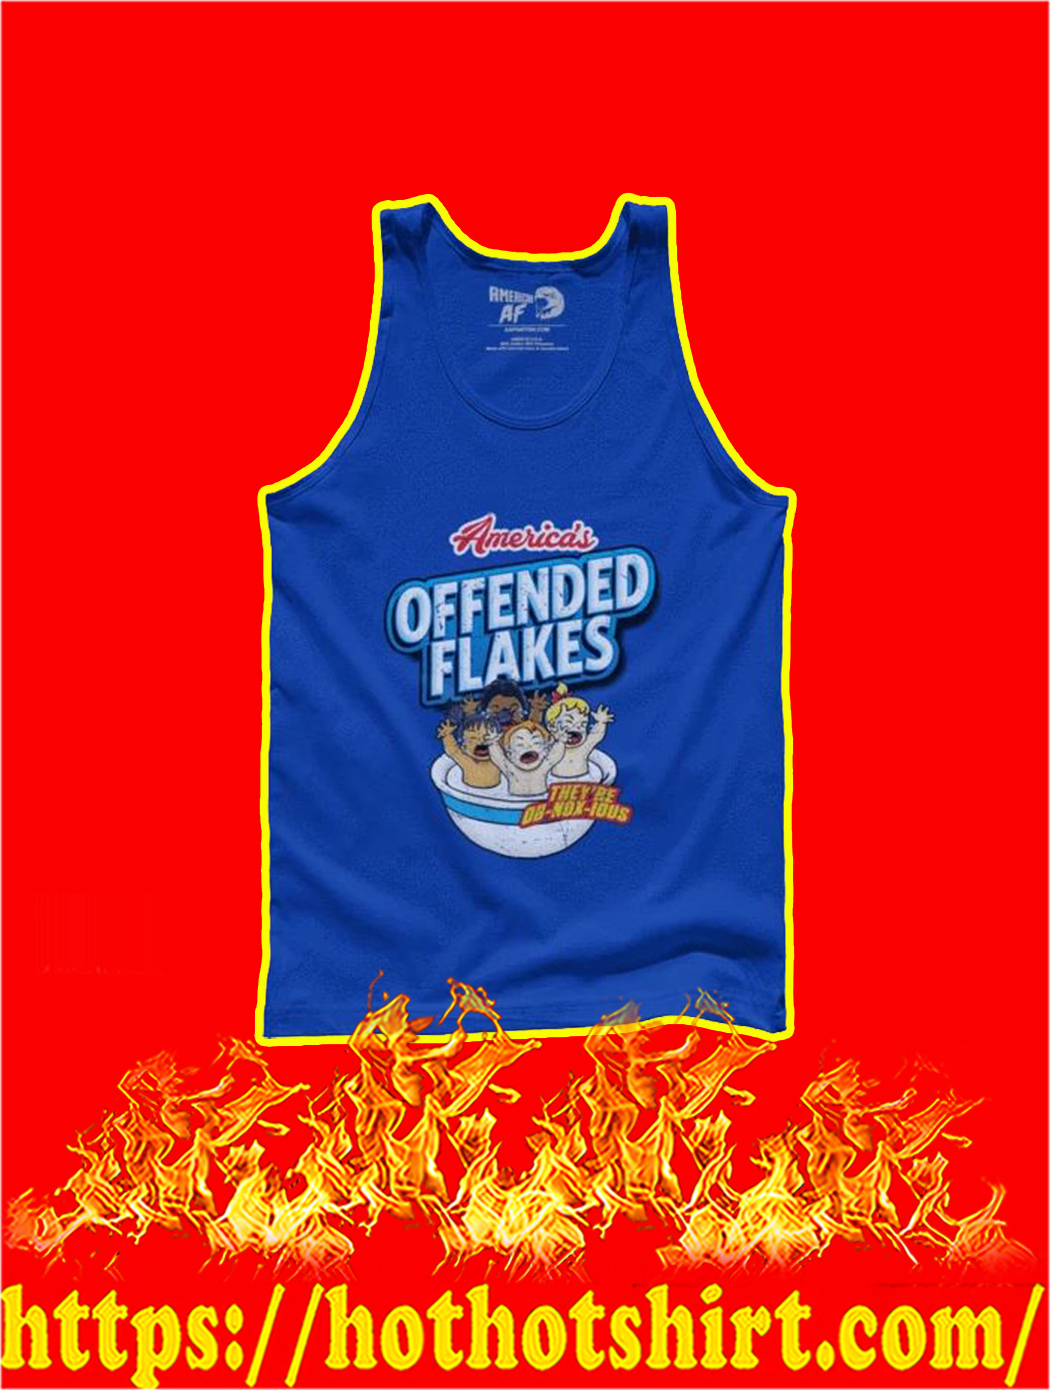 America's offended flakes They're Ob-nox-ious tank top